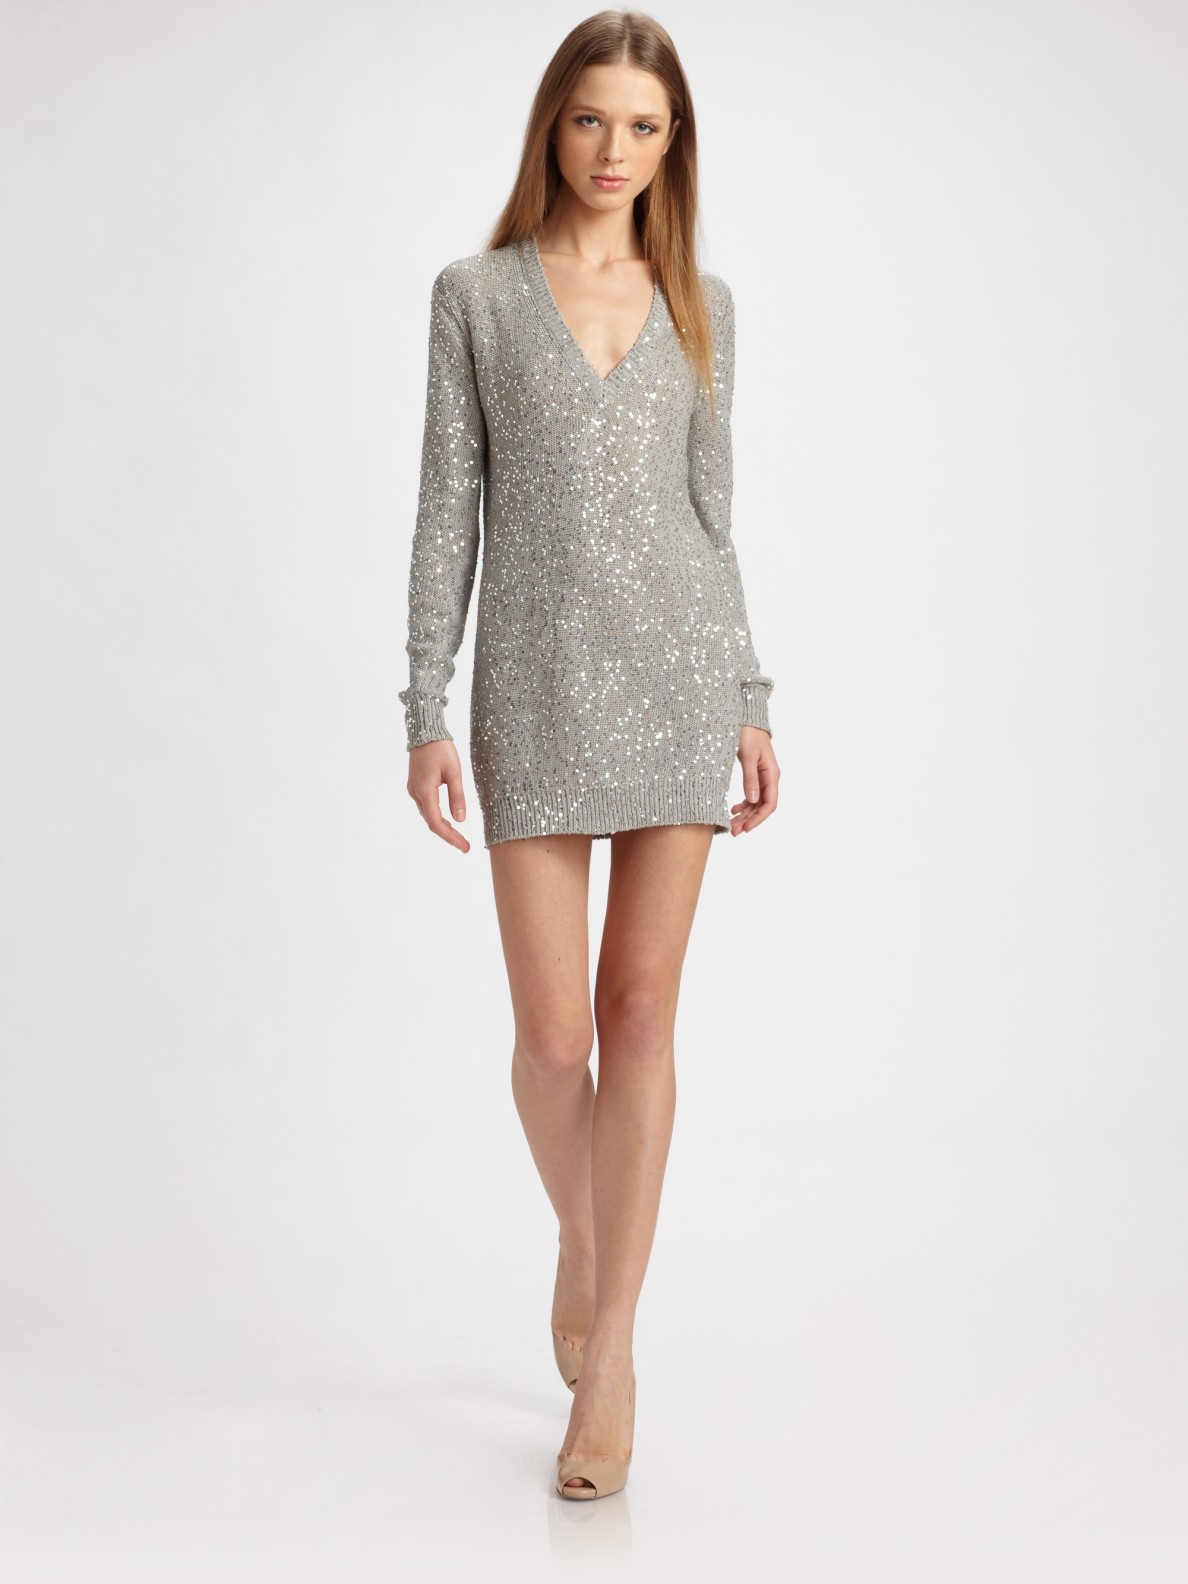 Sequin Gray V Stella Mccartney In Lyst Sweater Dress Neck 4Aq5jLR3